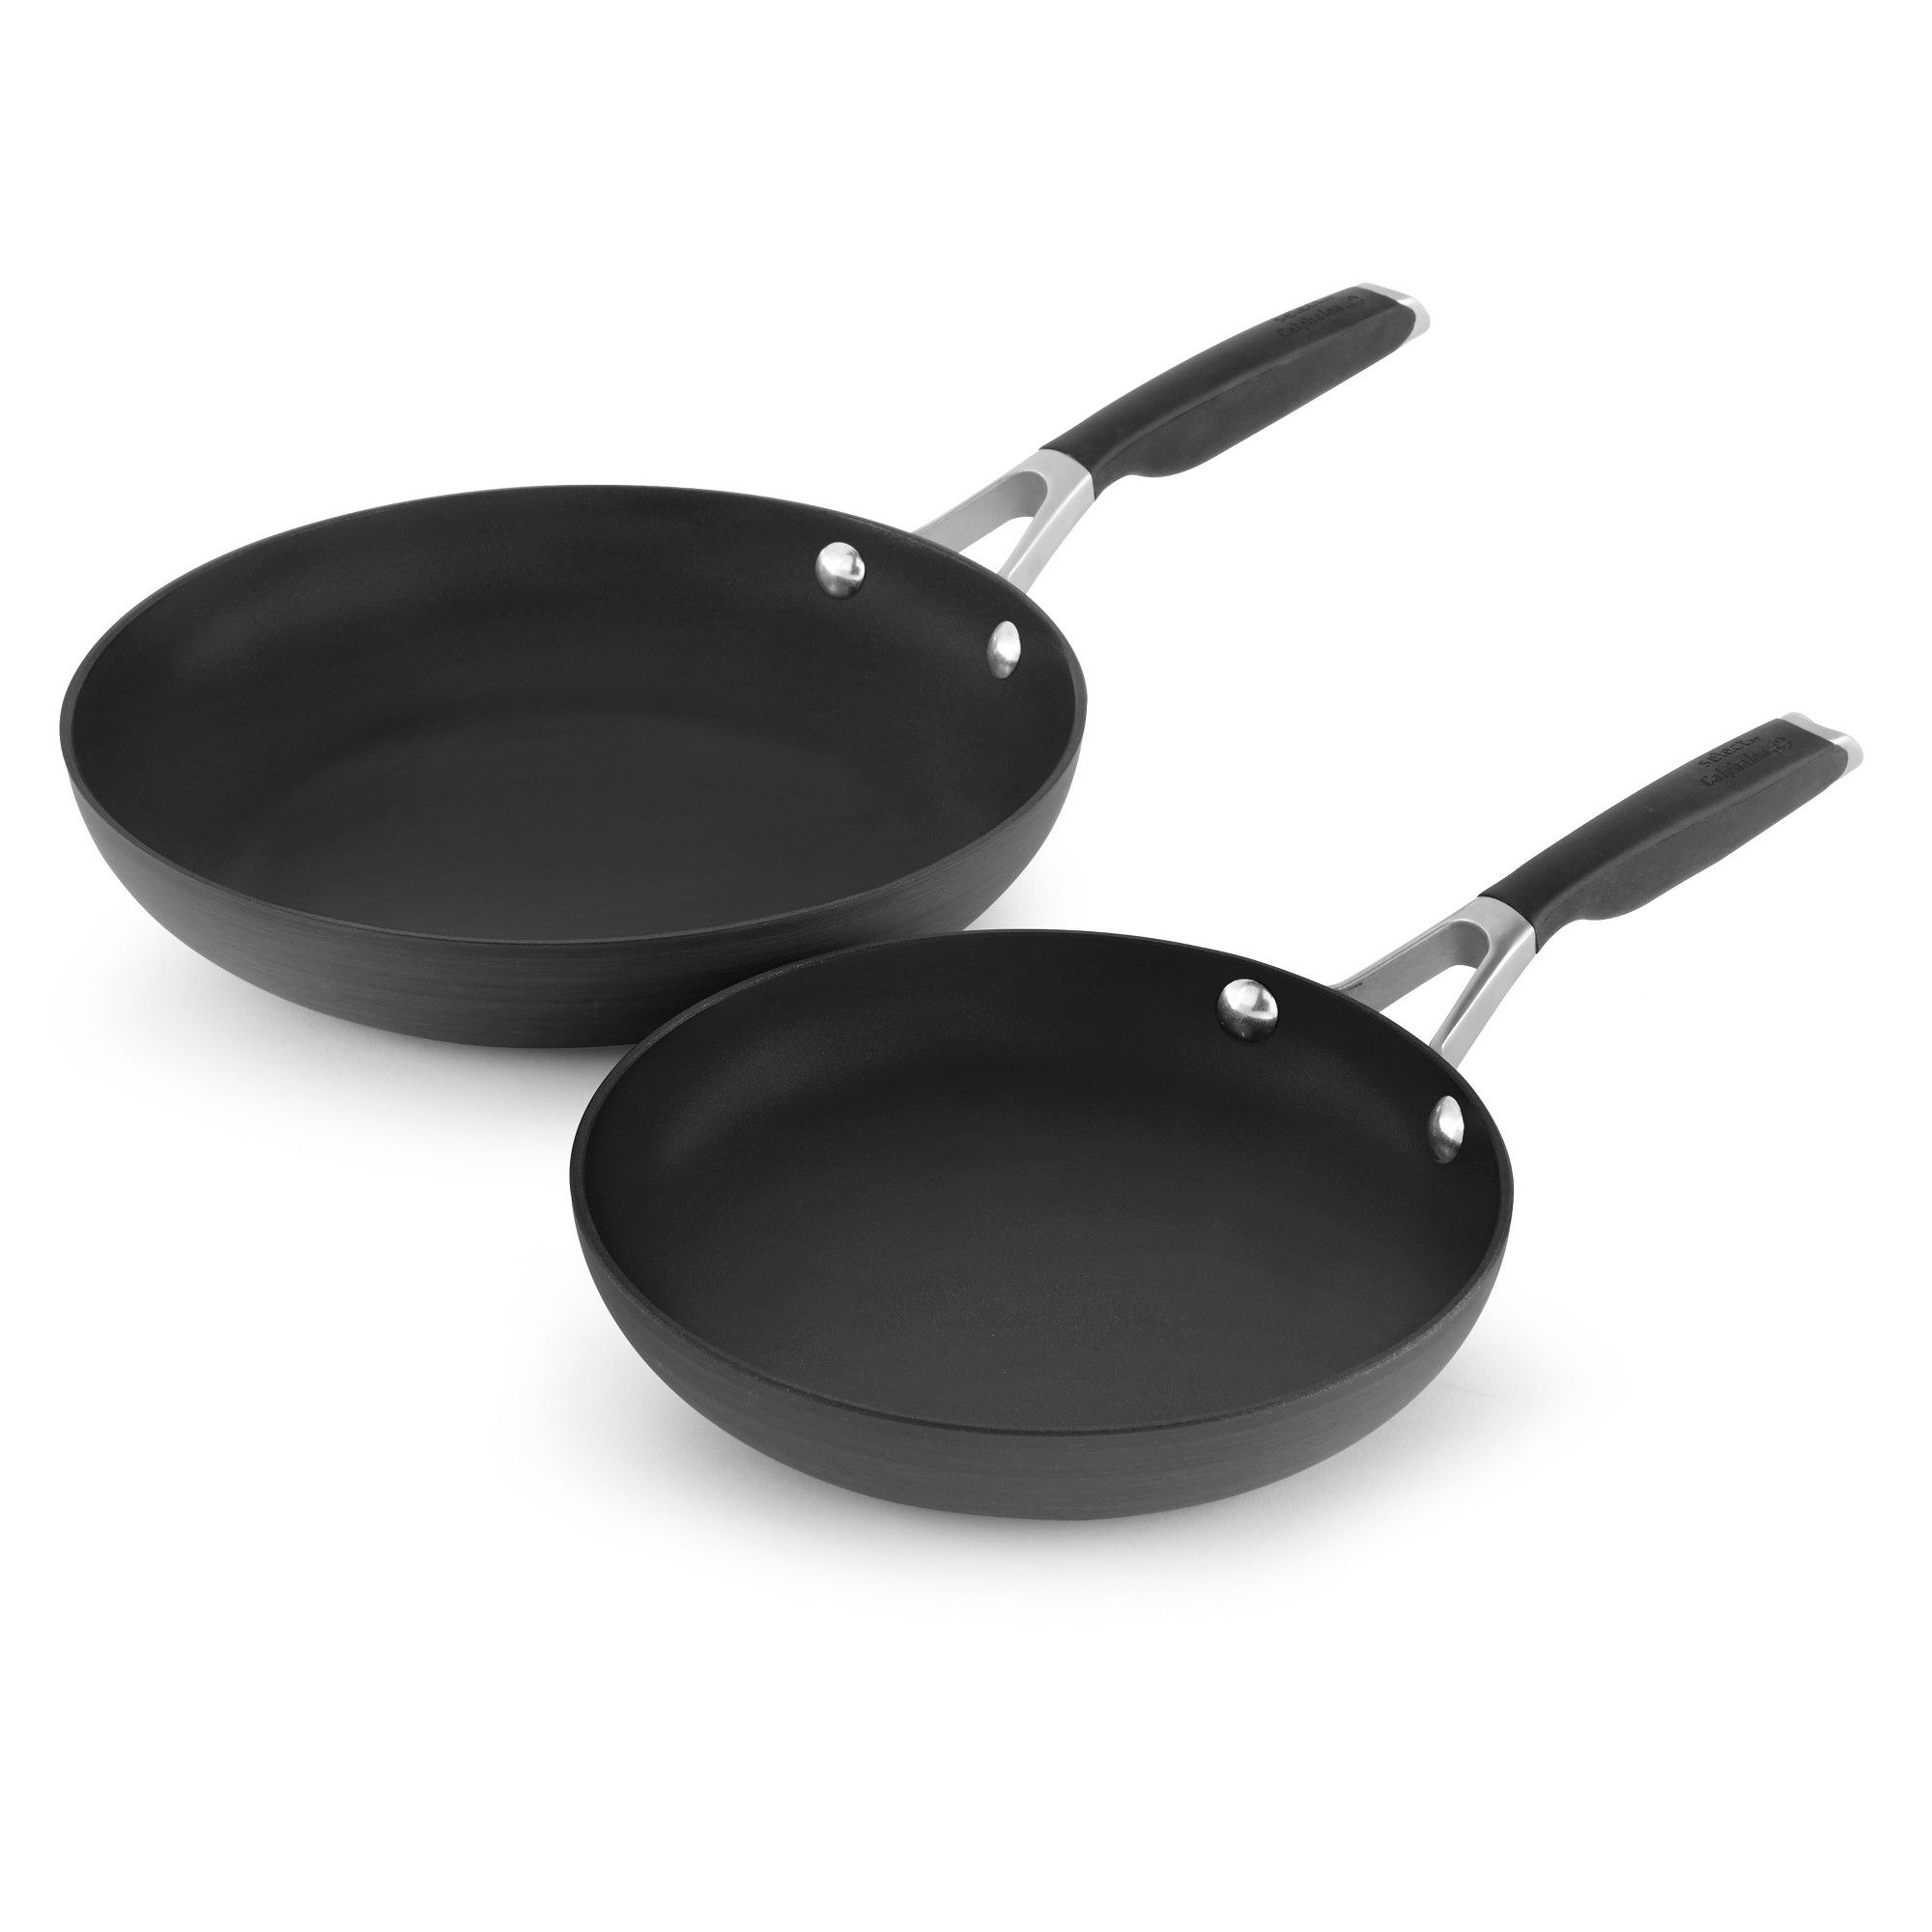 Calphalon 8 And 10 Hard Anodized Non Stick Frying Pan Set Fry Pan Set Calphalon Calphalon Pans